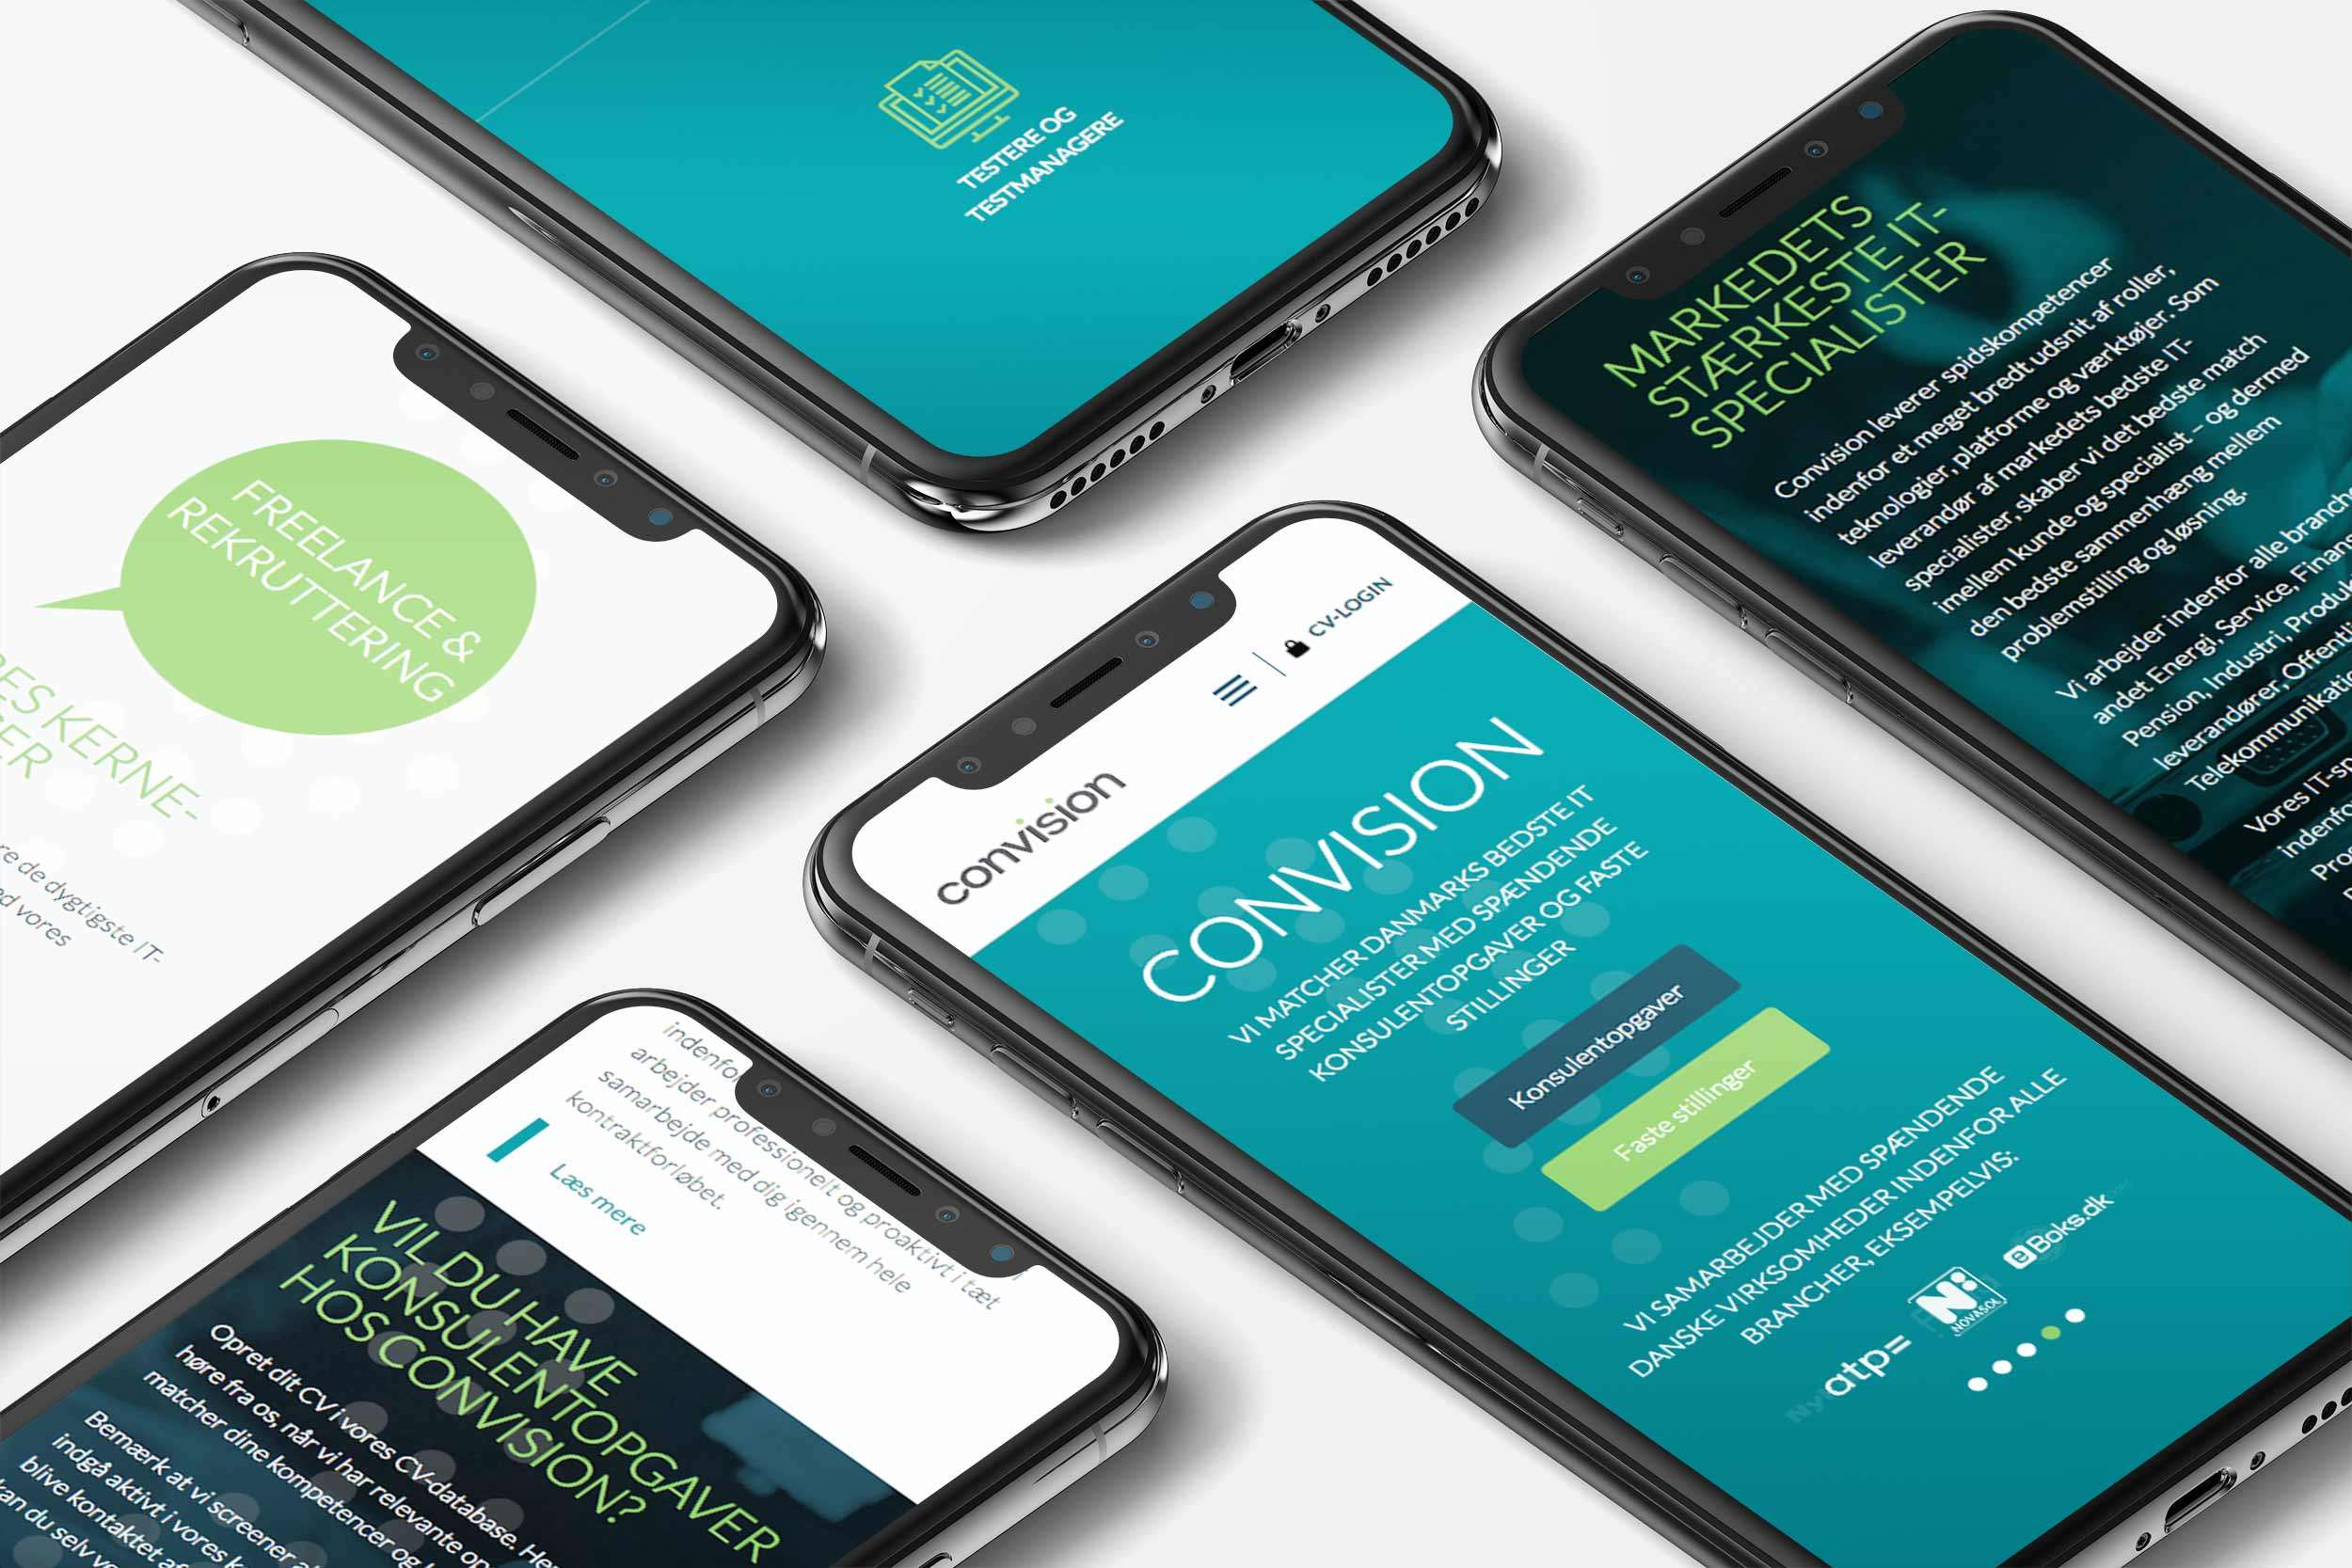 Convision iPhoneX website